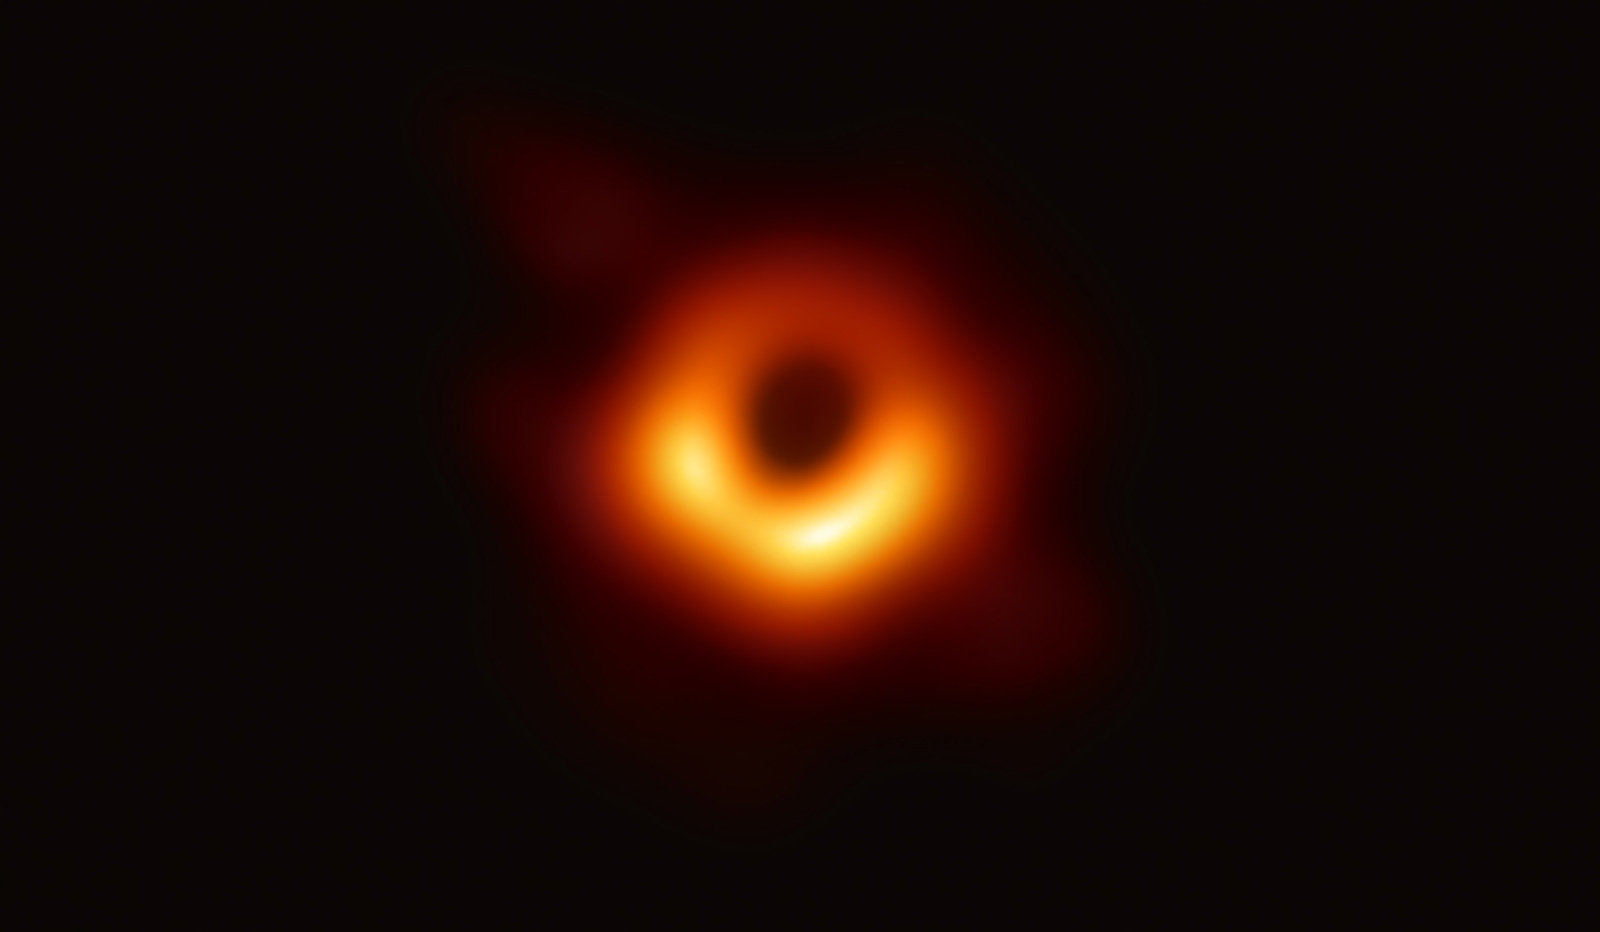 Blurry orange ring against a black backdrop